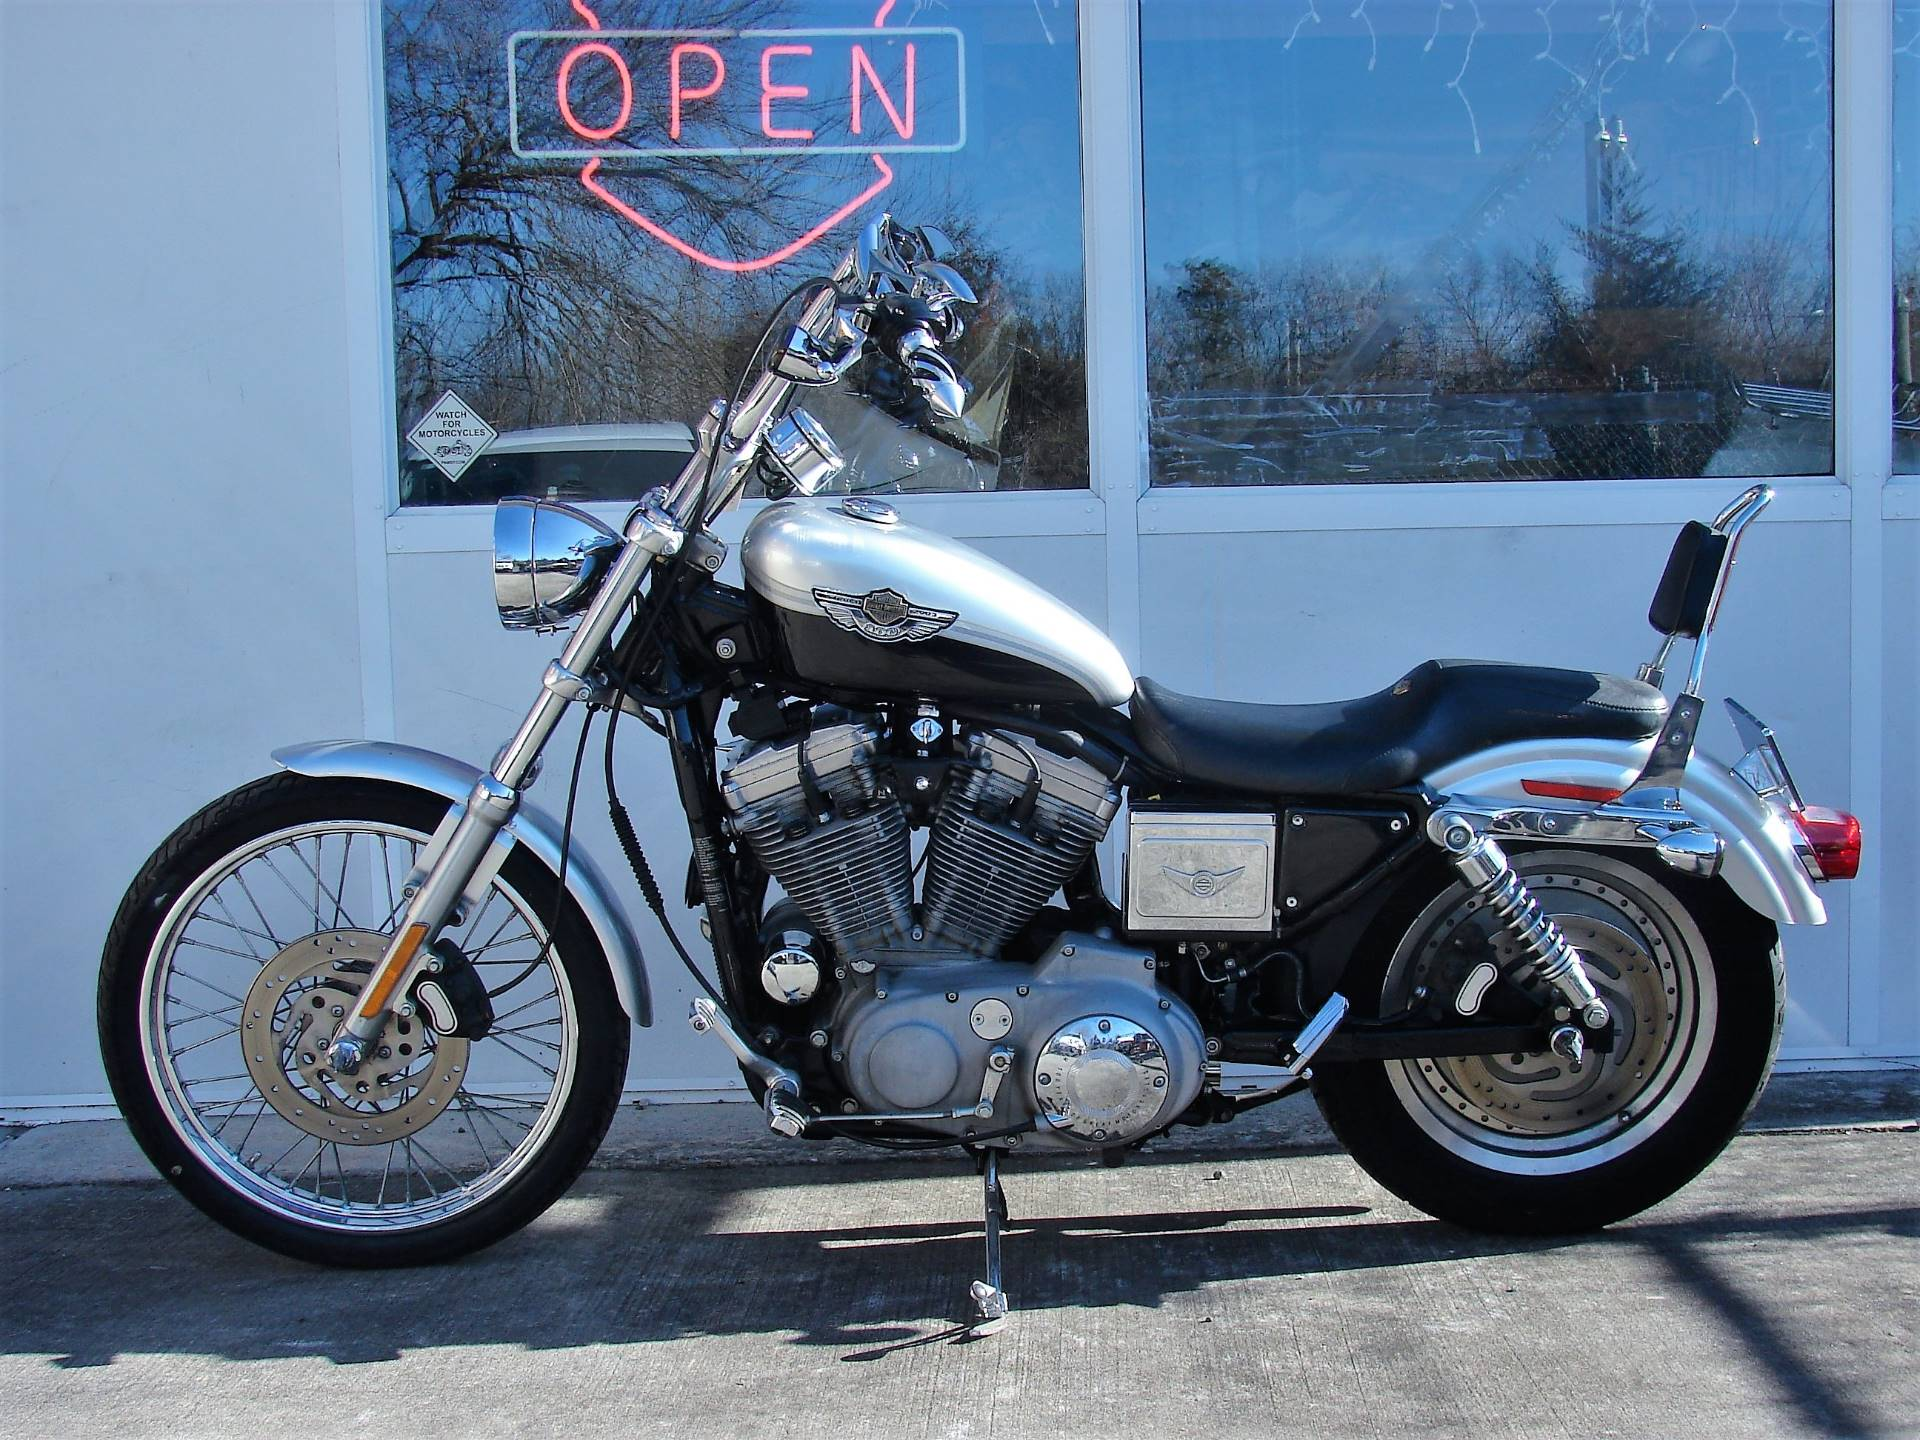 2003 Harley-Davidson XLH 883 Sportster (Anniversary Edition) (Silver & Black) in Williamstown, New Jersey - Photo 6